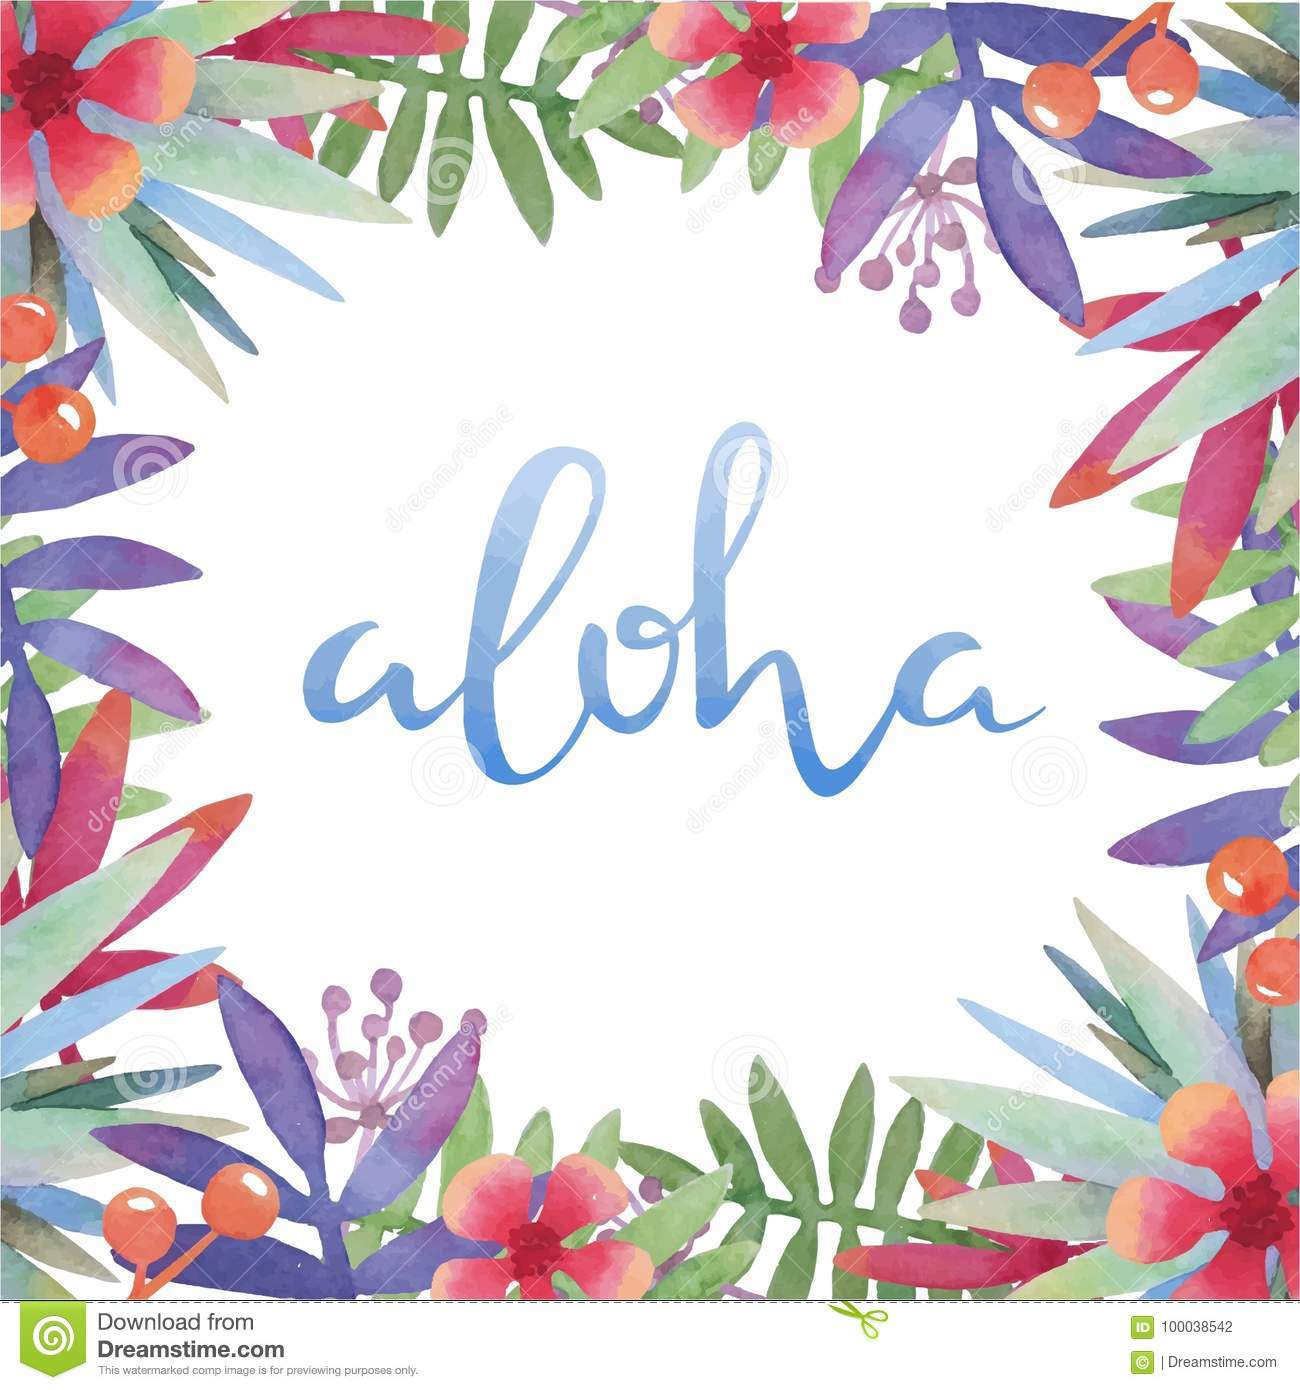 Watercolor Botanical Tropical Frame With Hawaii Greeting Stock ...